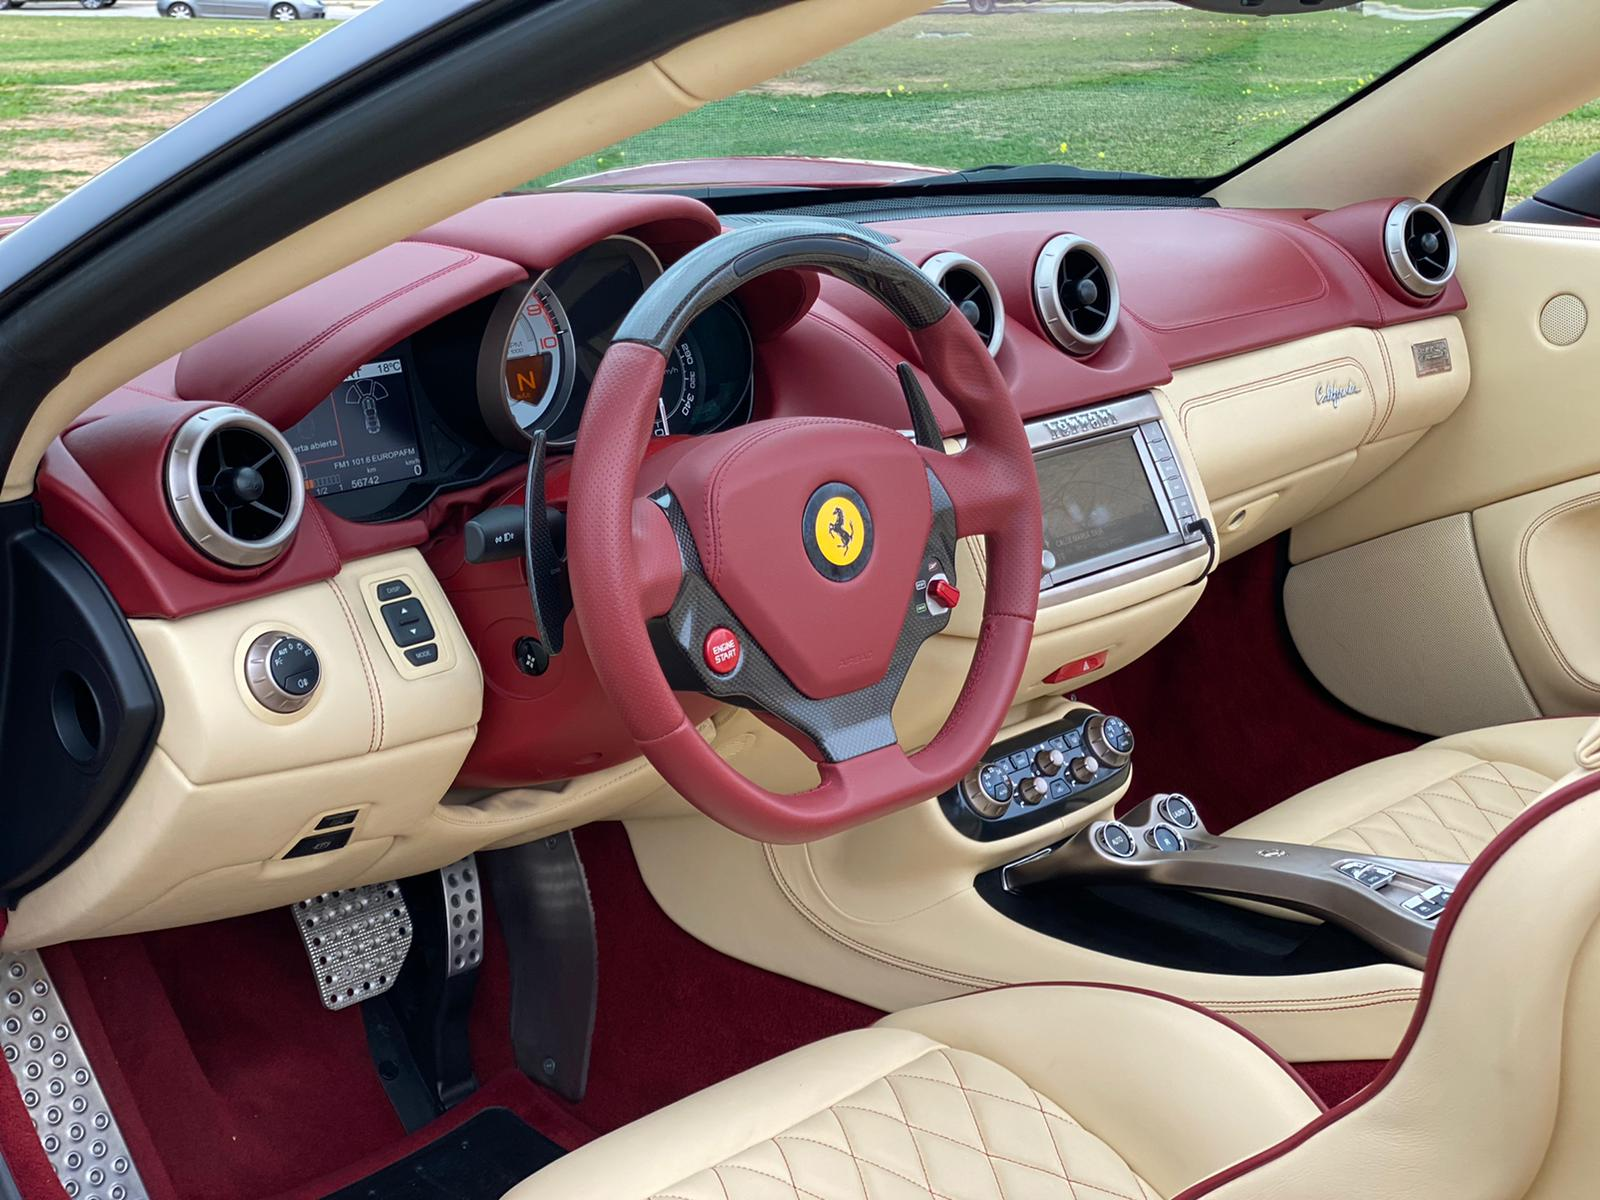 FERRARI CALIFORNIA TAILOR MADE 4 PLAZAS 460 CV 17